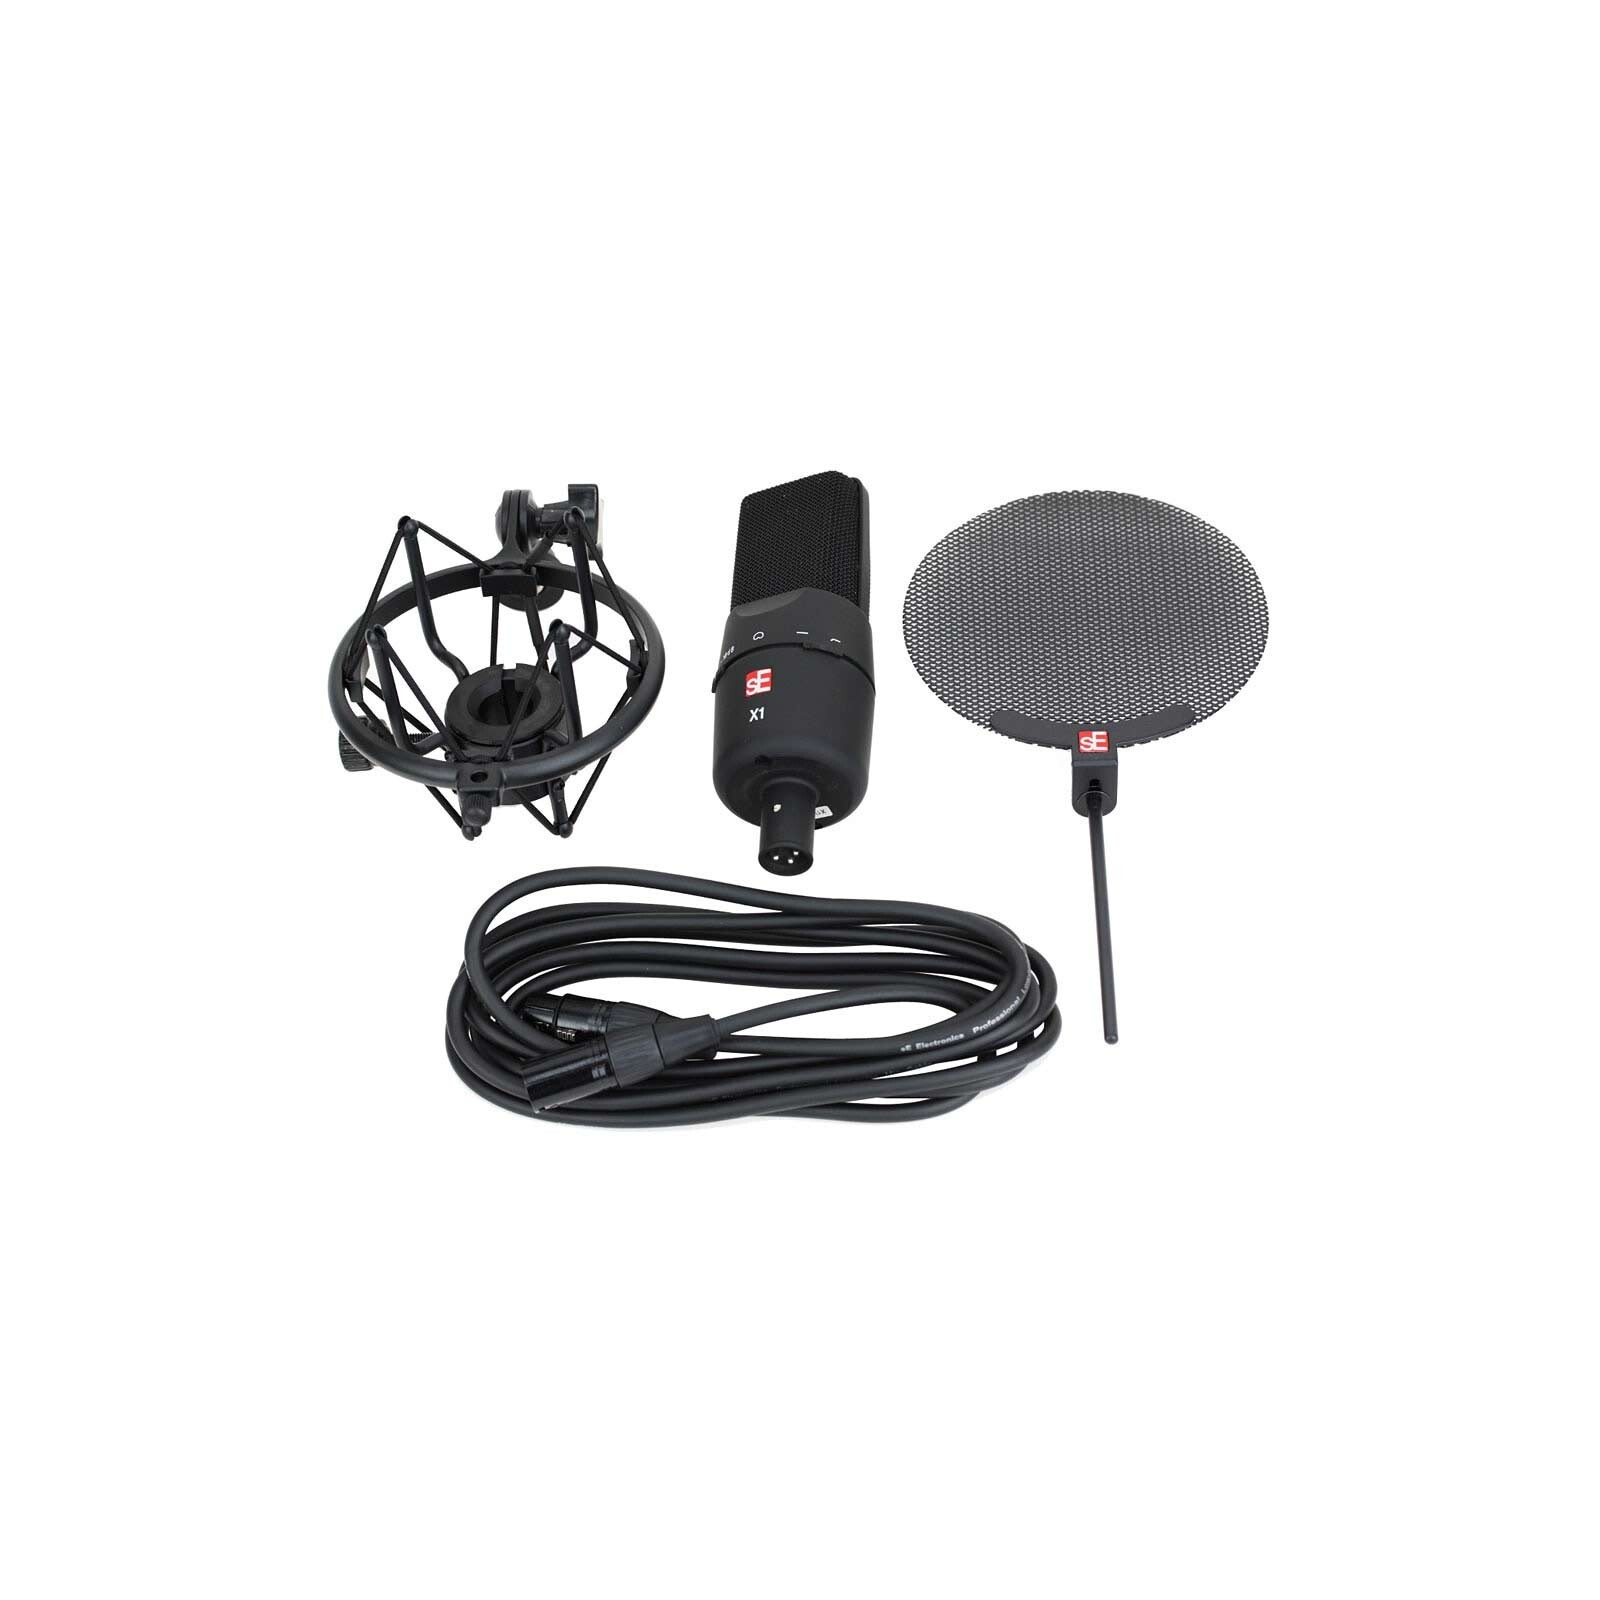 sE Electronics X1S Vocal Pack Studio Recording Condenser Microphone Kit